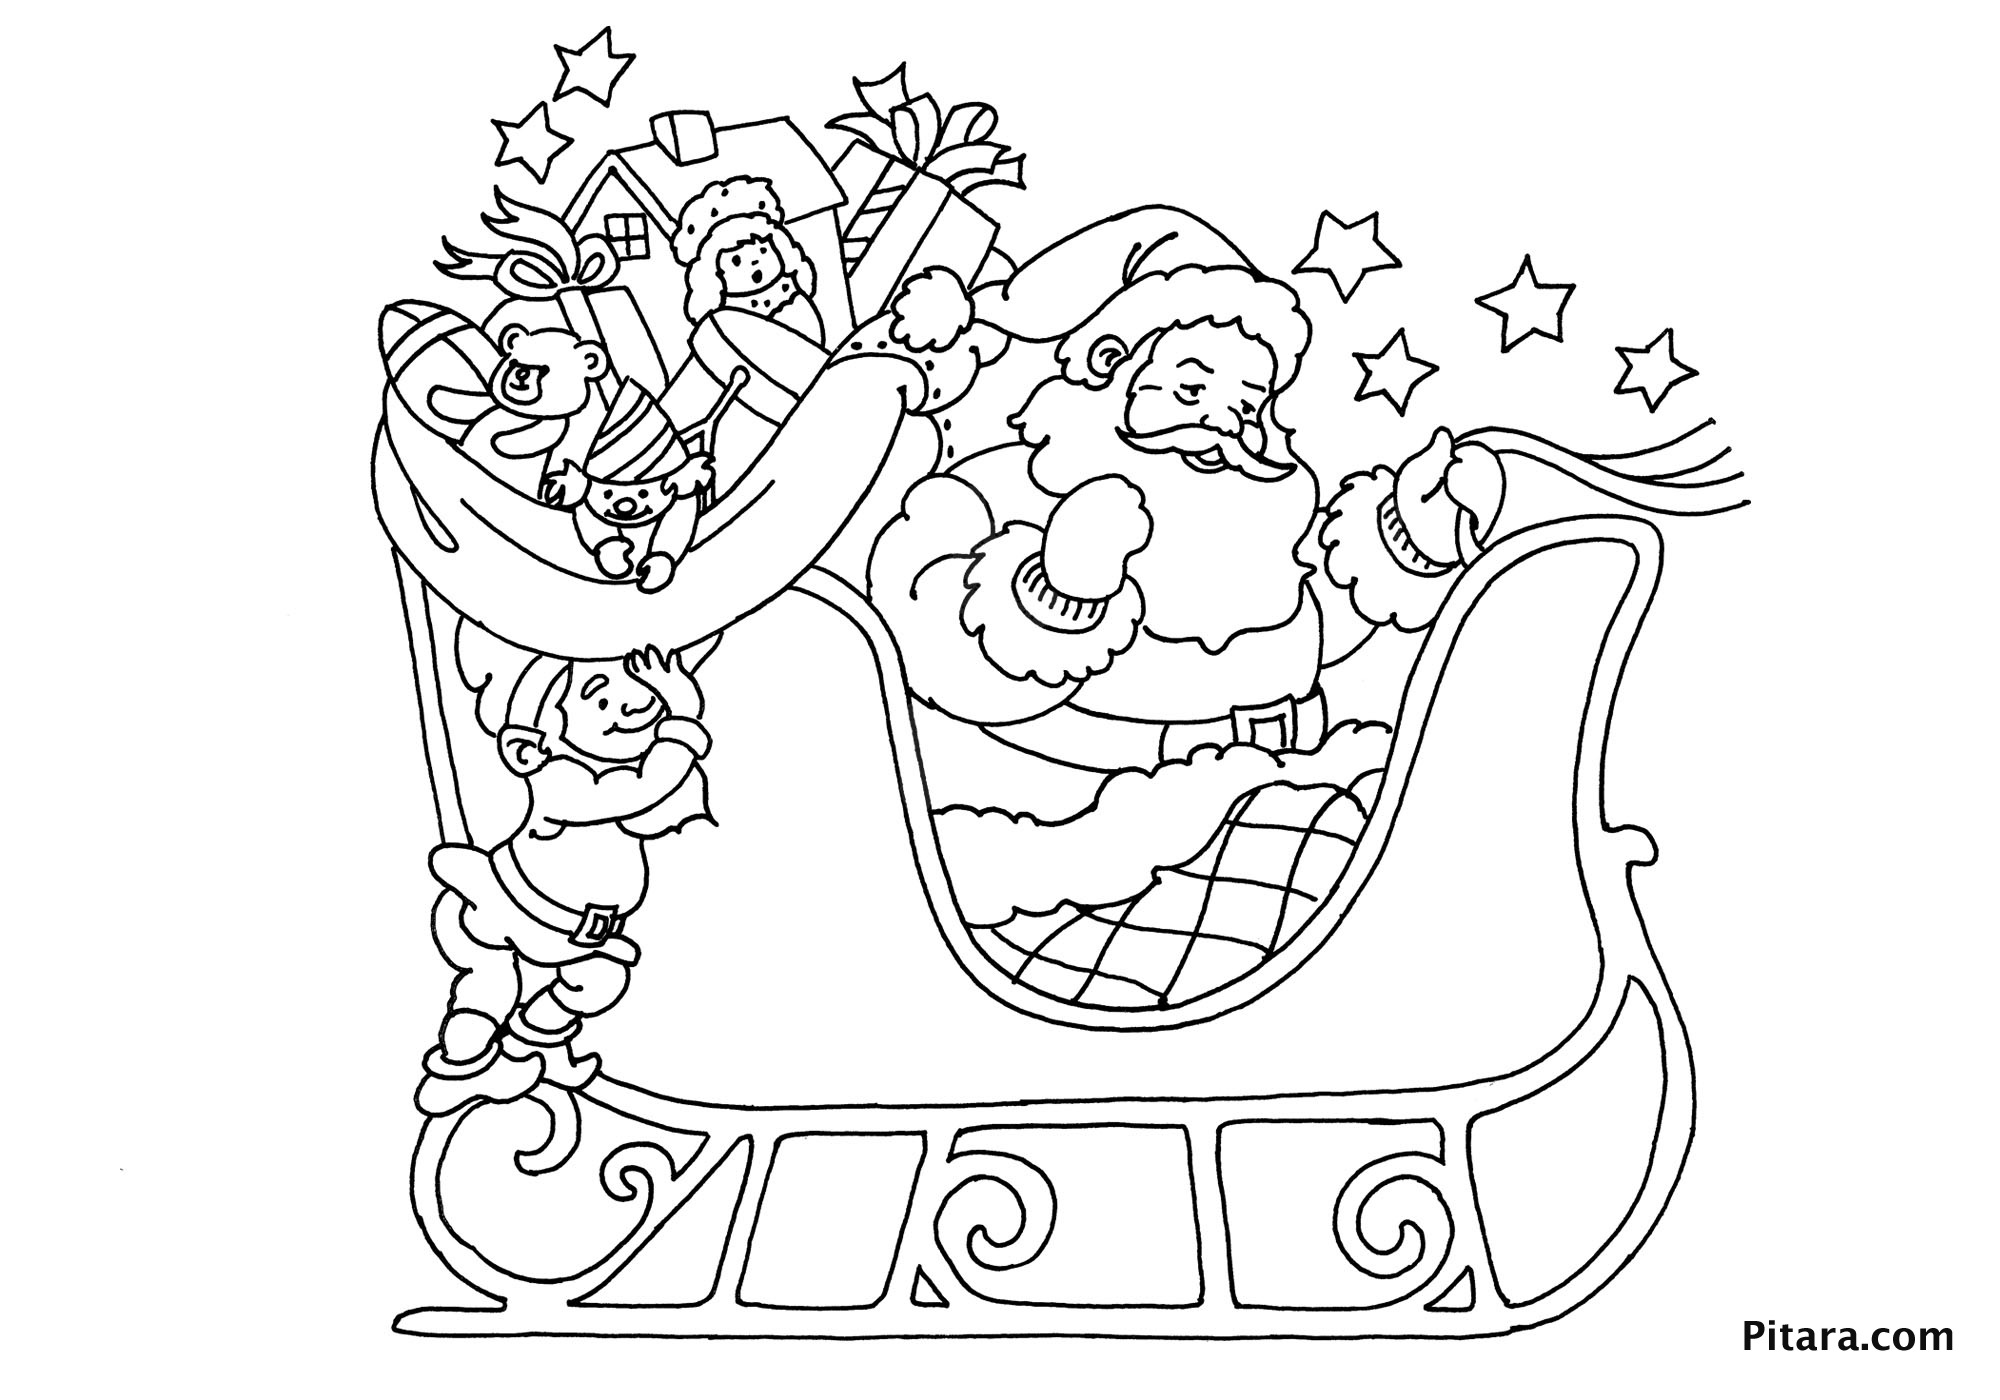 Large Santa Coloring Page With Christmas Pages For Kids Pitara Network